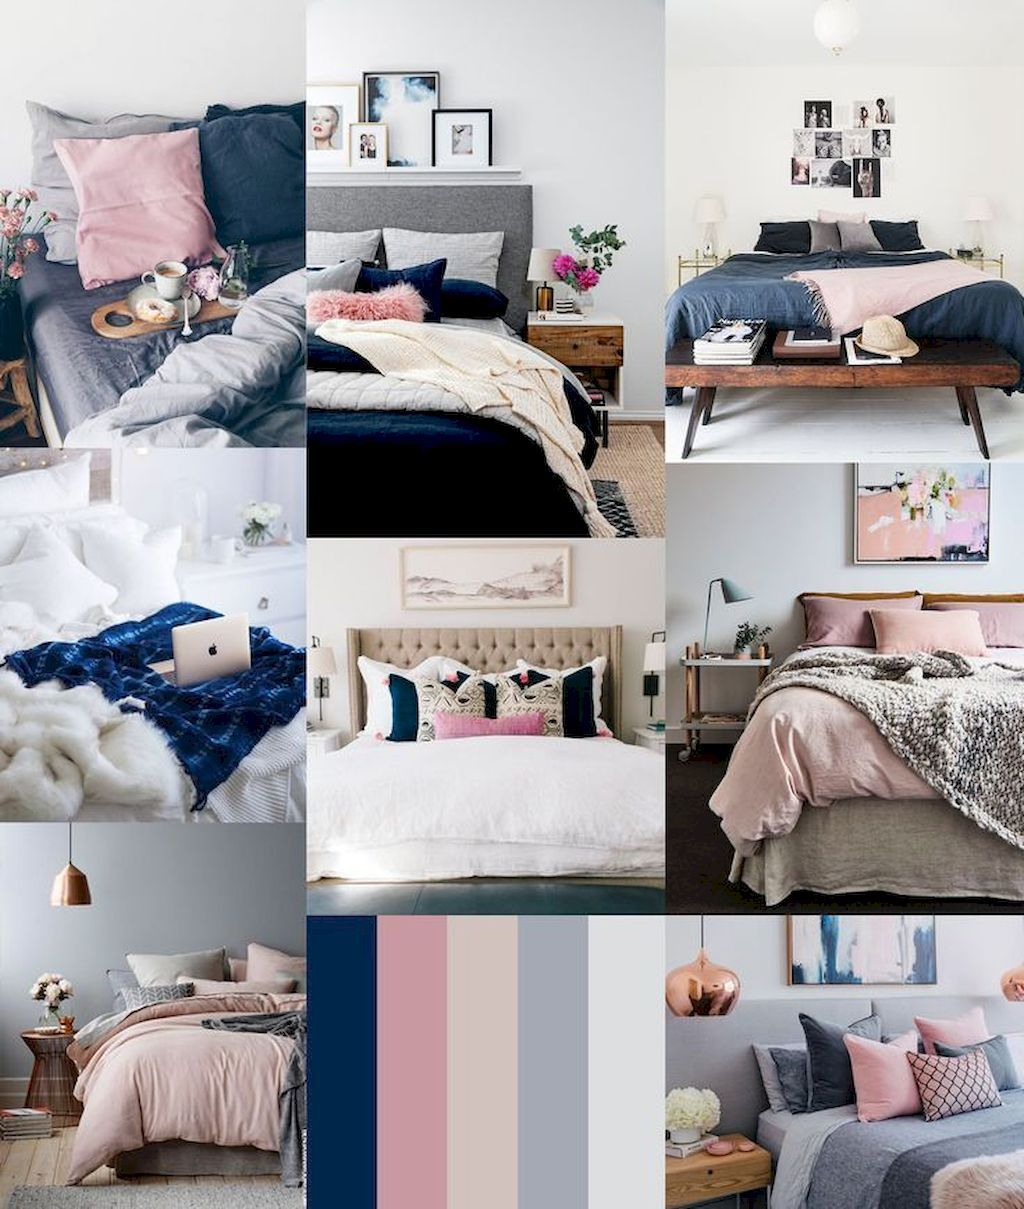 72 Simple Bedroom Decorating Ideas With Beautiful Color Bedroom